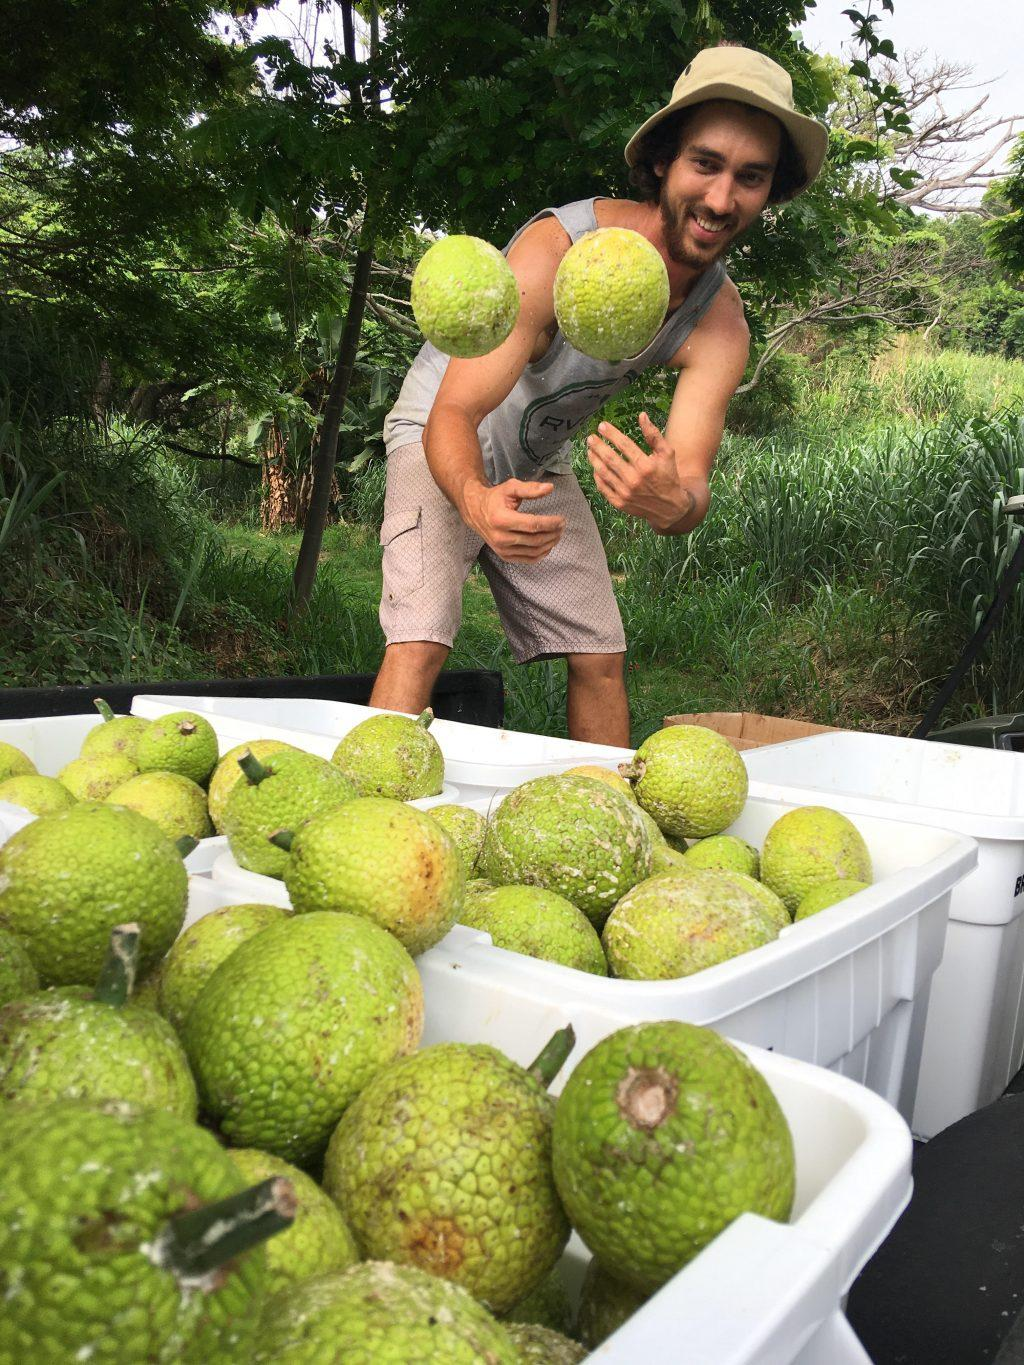 A worker at Hawaiʻi ʻUlu Producers Cooperative tosses ʻulu (Hawaiian for breadfruit) into a bin. The cooperative, one of the many organizations supported by Ulupono Initiative, works with the Hawaiʻi Food Basket to provide those in need on Hawaiʻi Island with steamed and frozen 'ulu, 'uala (Hawaiian for sweet potato) and squash during the COVID-19 pandemic. Photo courtesy of the Hawai'i 'Ulu Producers Cooperative.